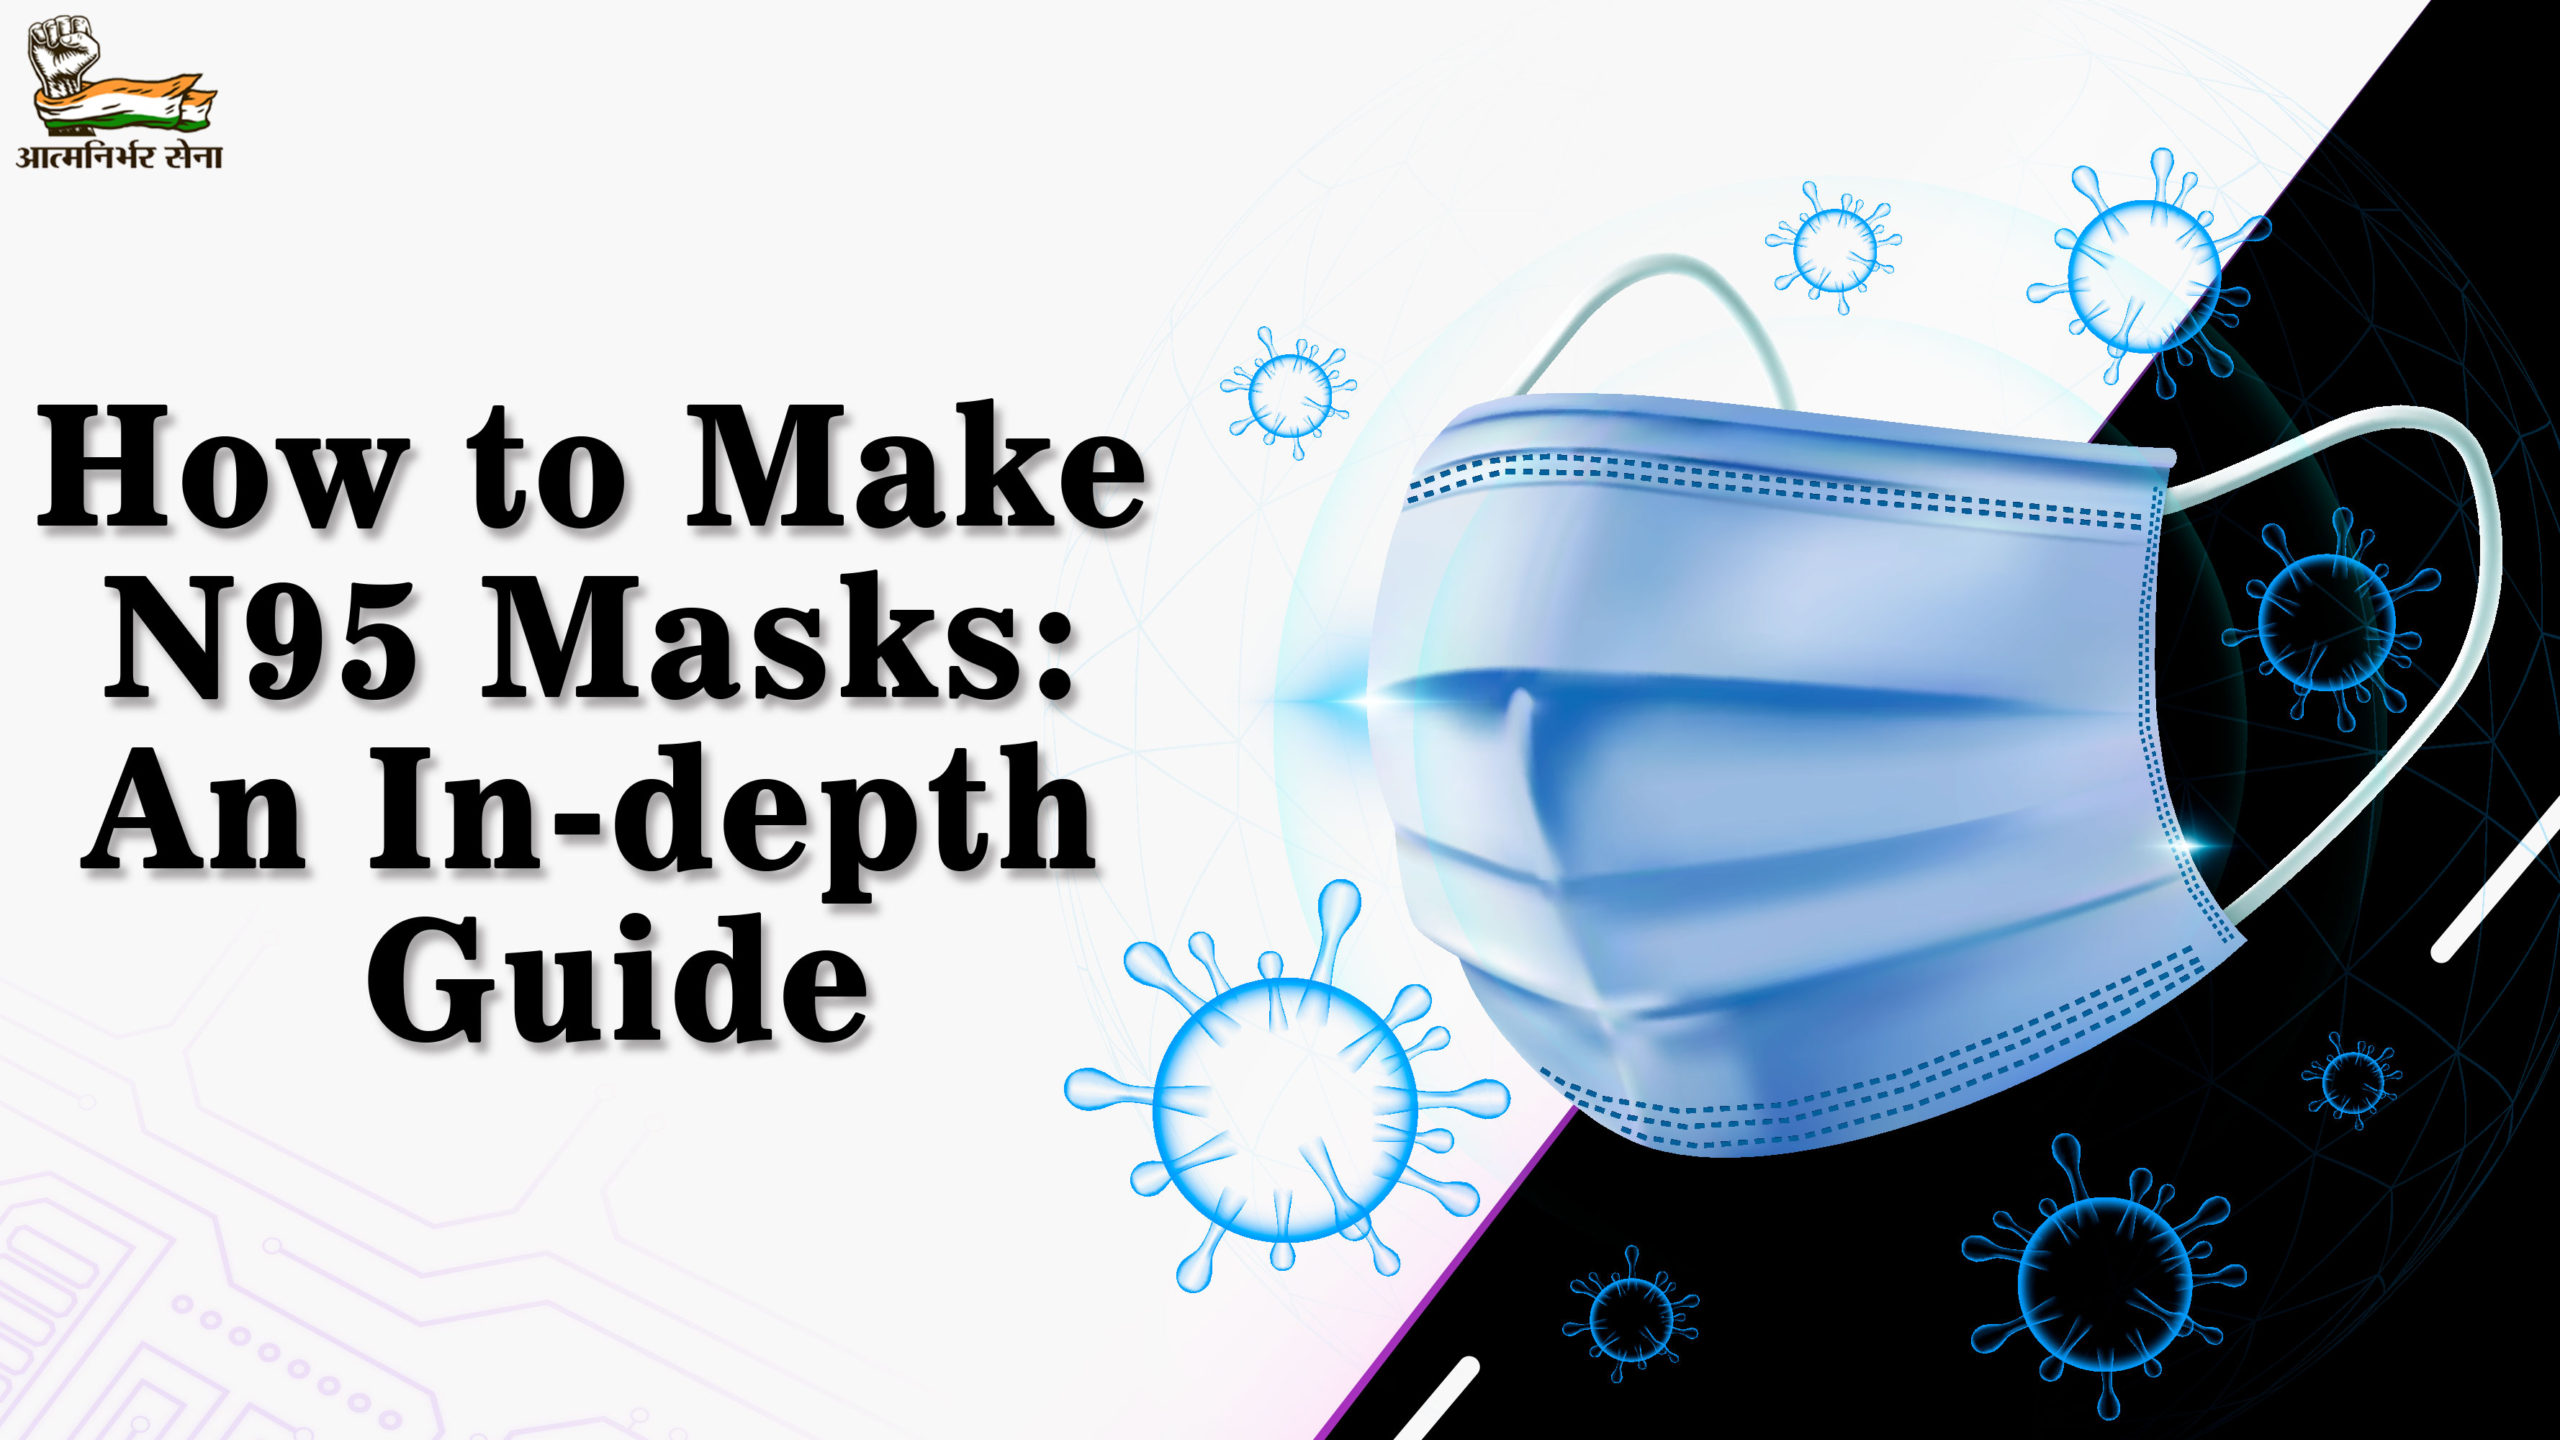 How to make N95 Masks- An In-depth Guide to Follow